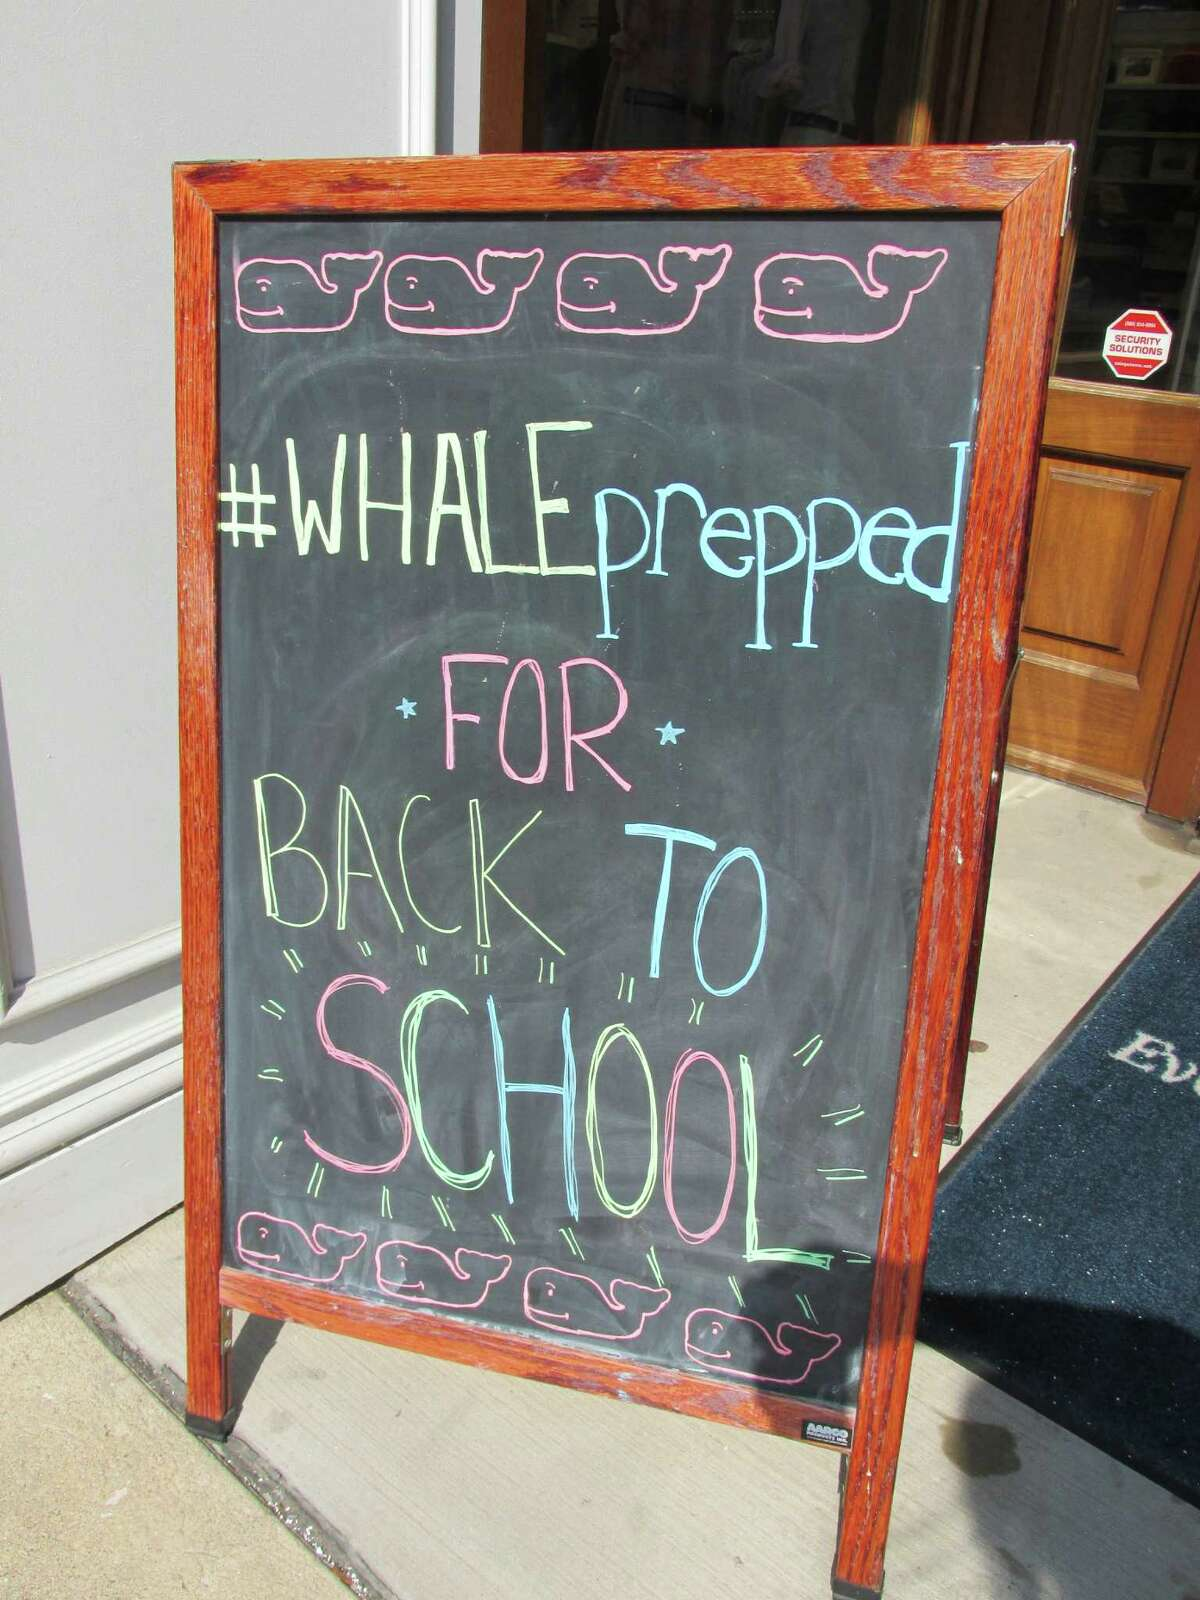 Stamford, Conn.-based Vineyard Vines has sued a Rhode Island company it says is infringing on its pink whale logo.